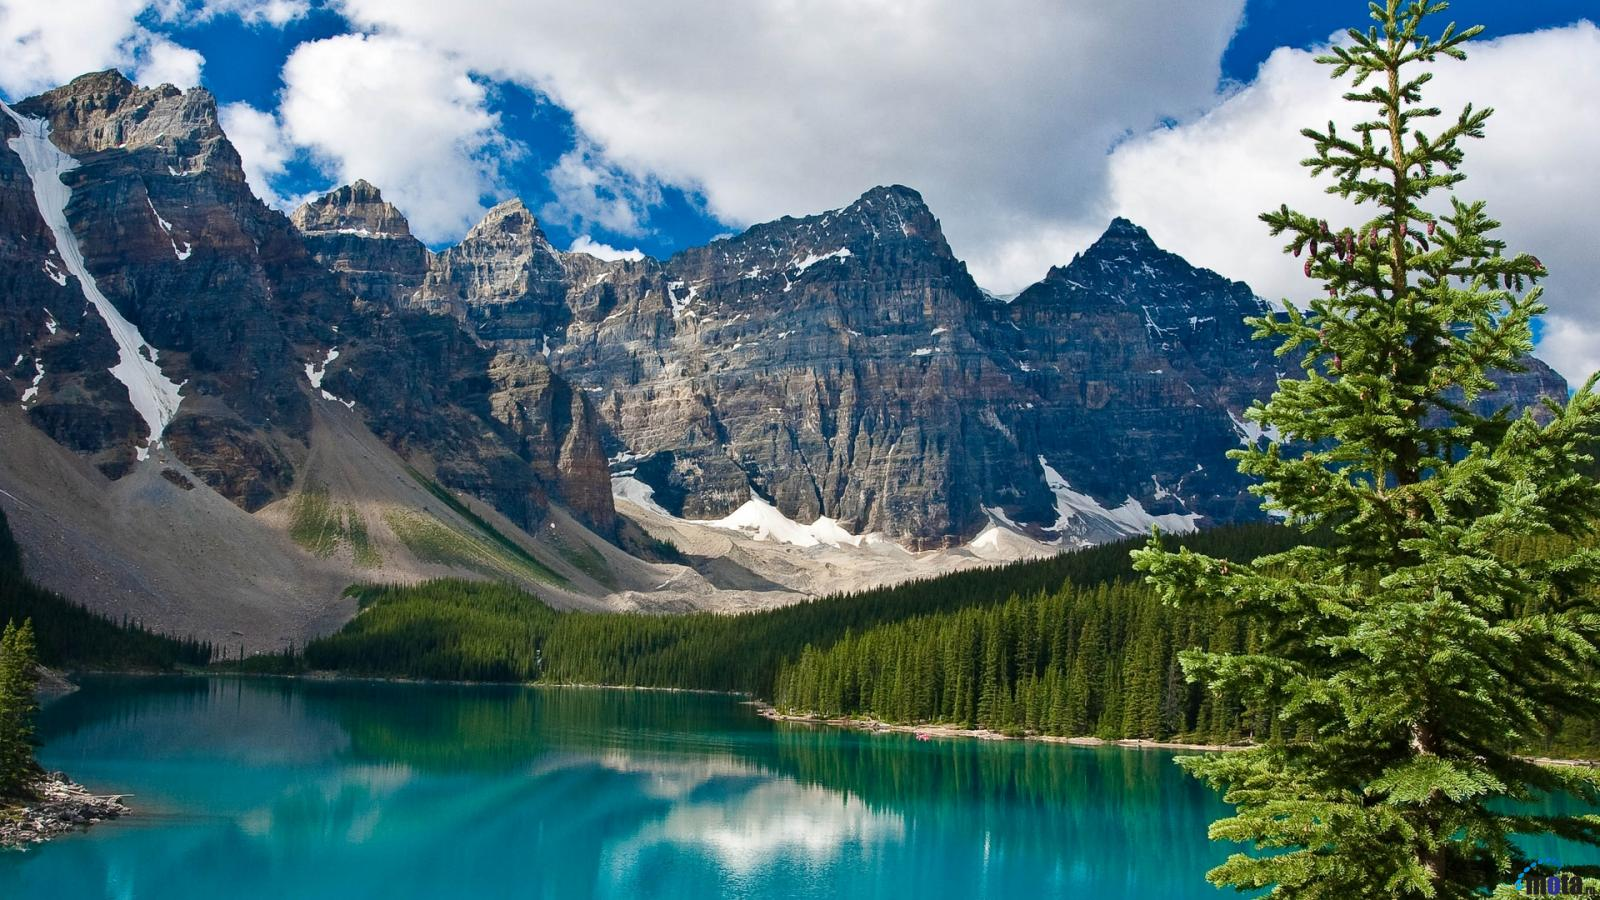 Download Wallpaper Blue lake and rocky mountains 1600 x 900 1600x900